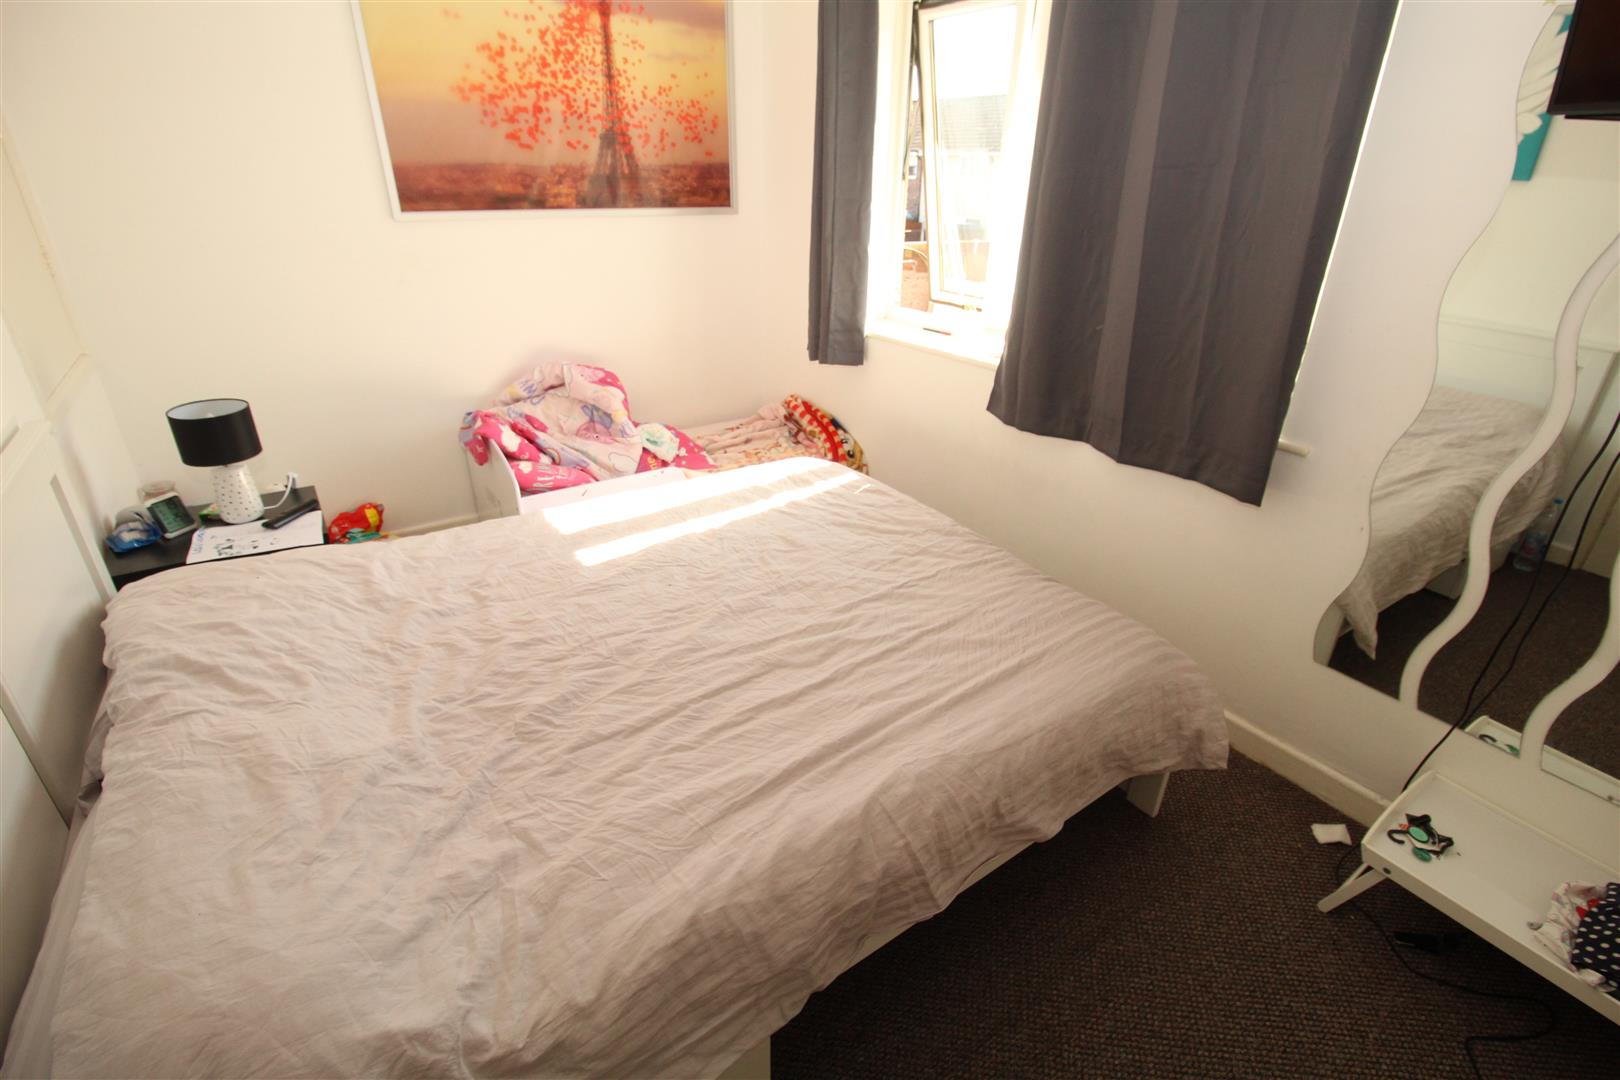 2 Bedrooms, House - Terraced, Maureen Walk, Fazakerley, Liverpool